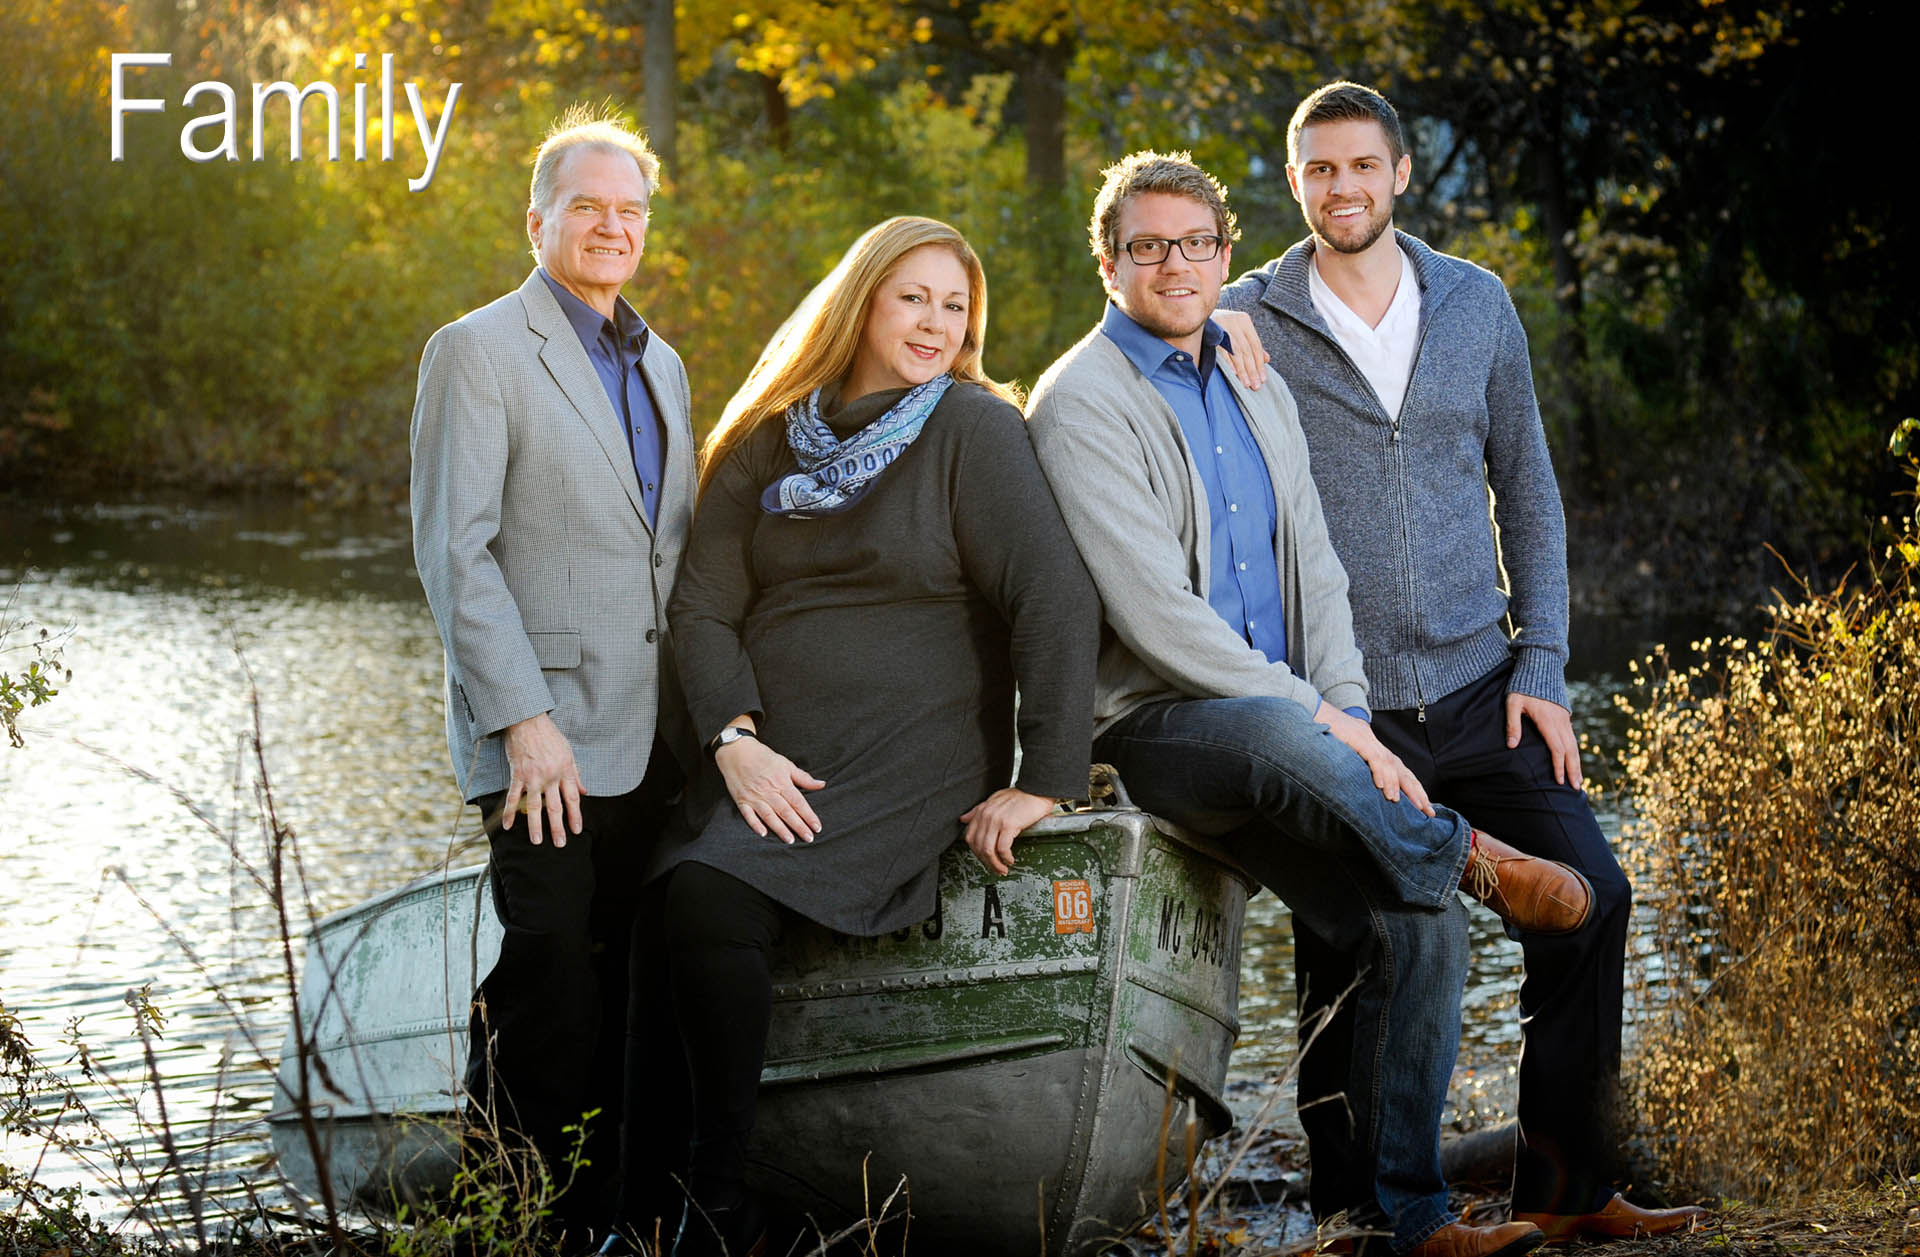 A metro Detroit family features a fun family photo with three generations.